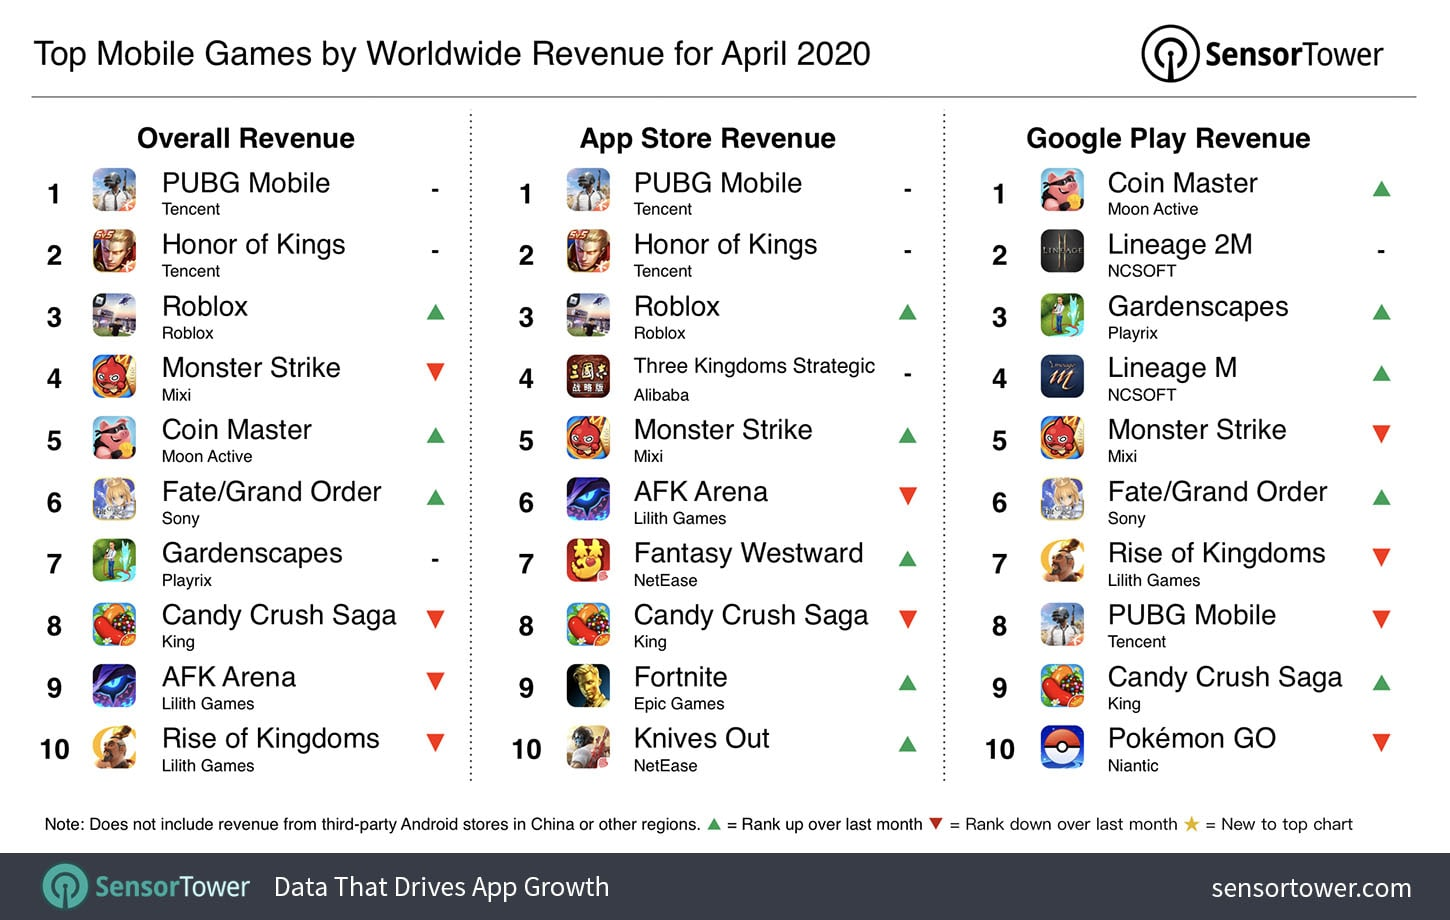 top-mobile-games-by-worldwide-revenue-april-2020